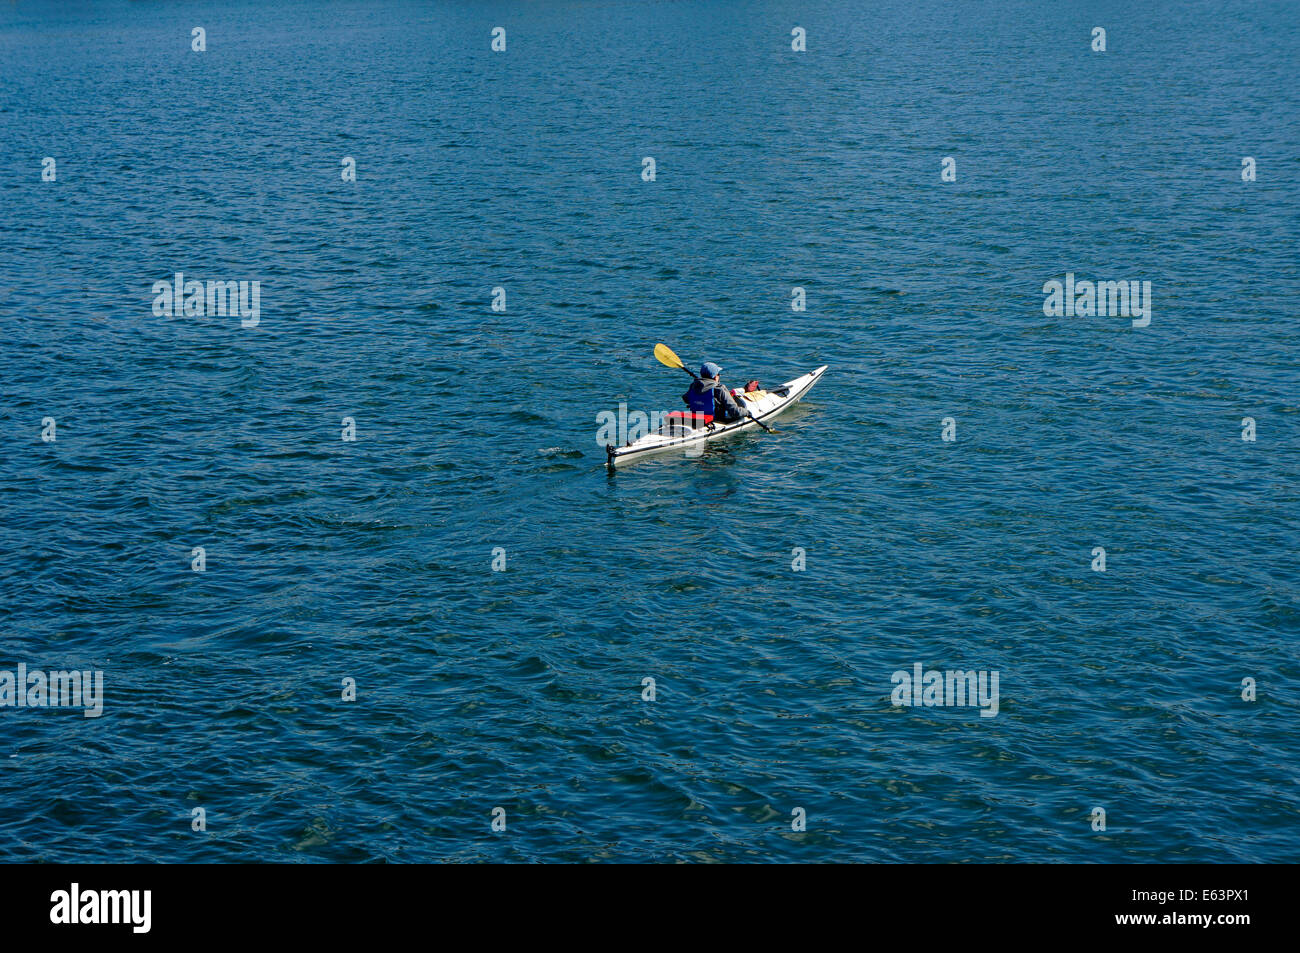 Solitary kayaker in English Bay, Vancouver, BC, Canada - Stock Image